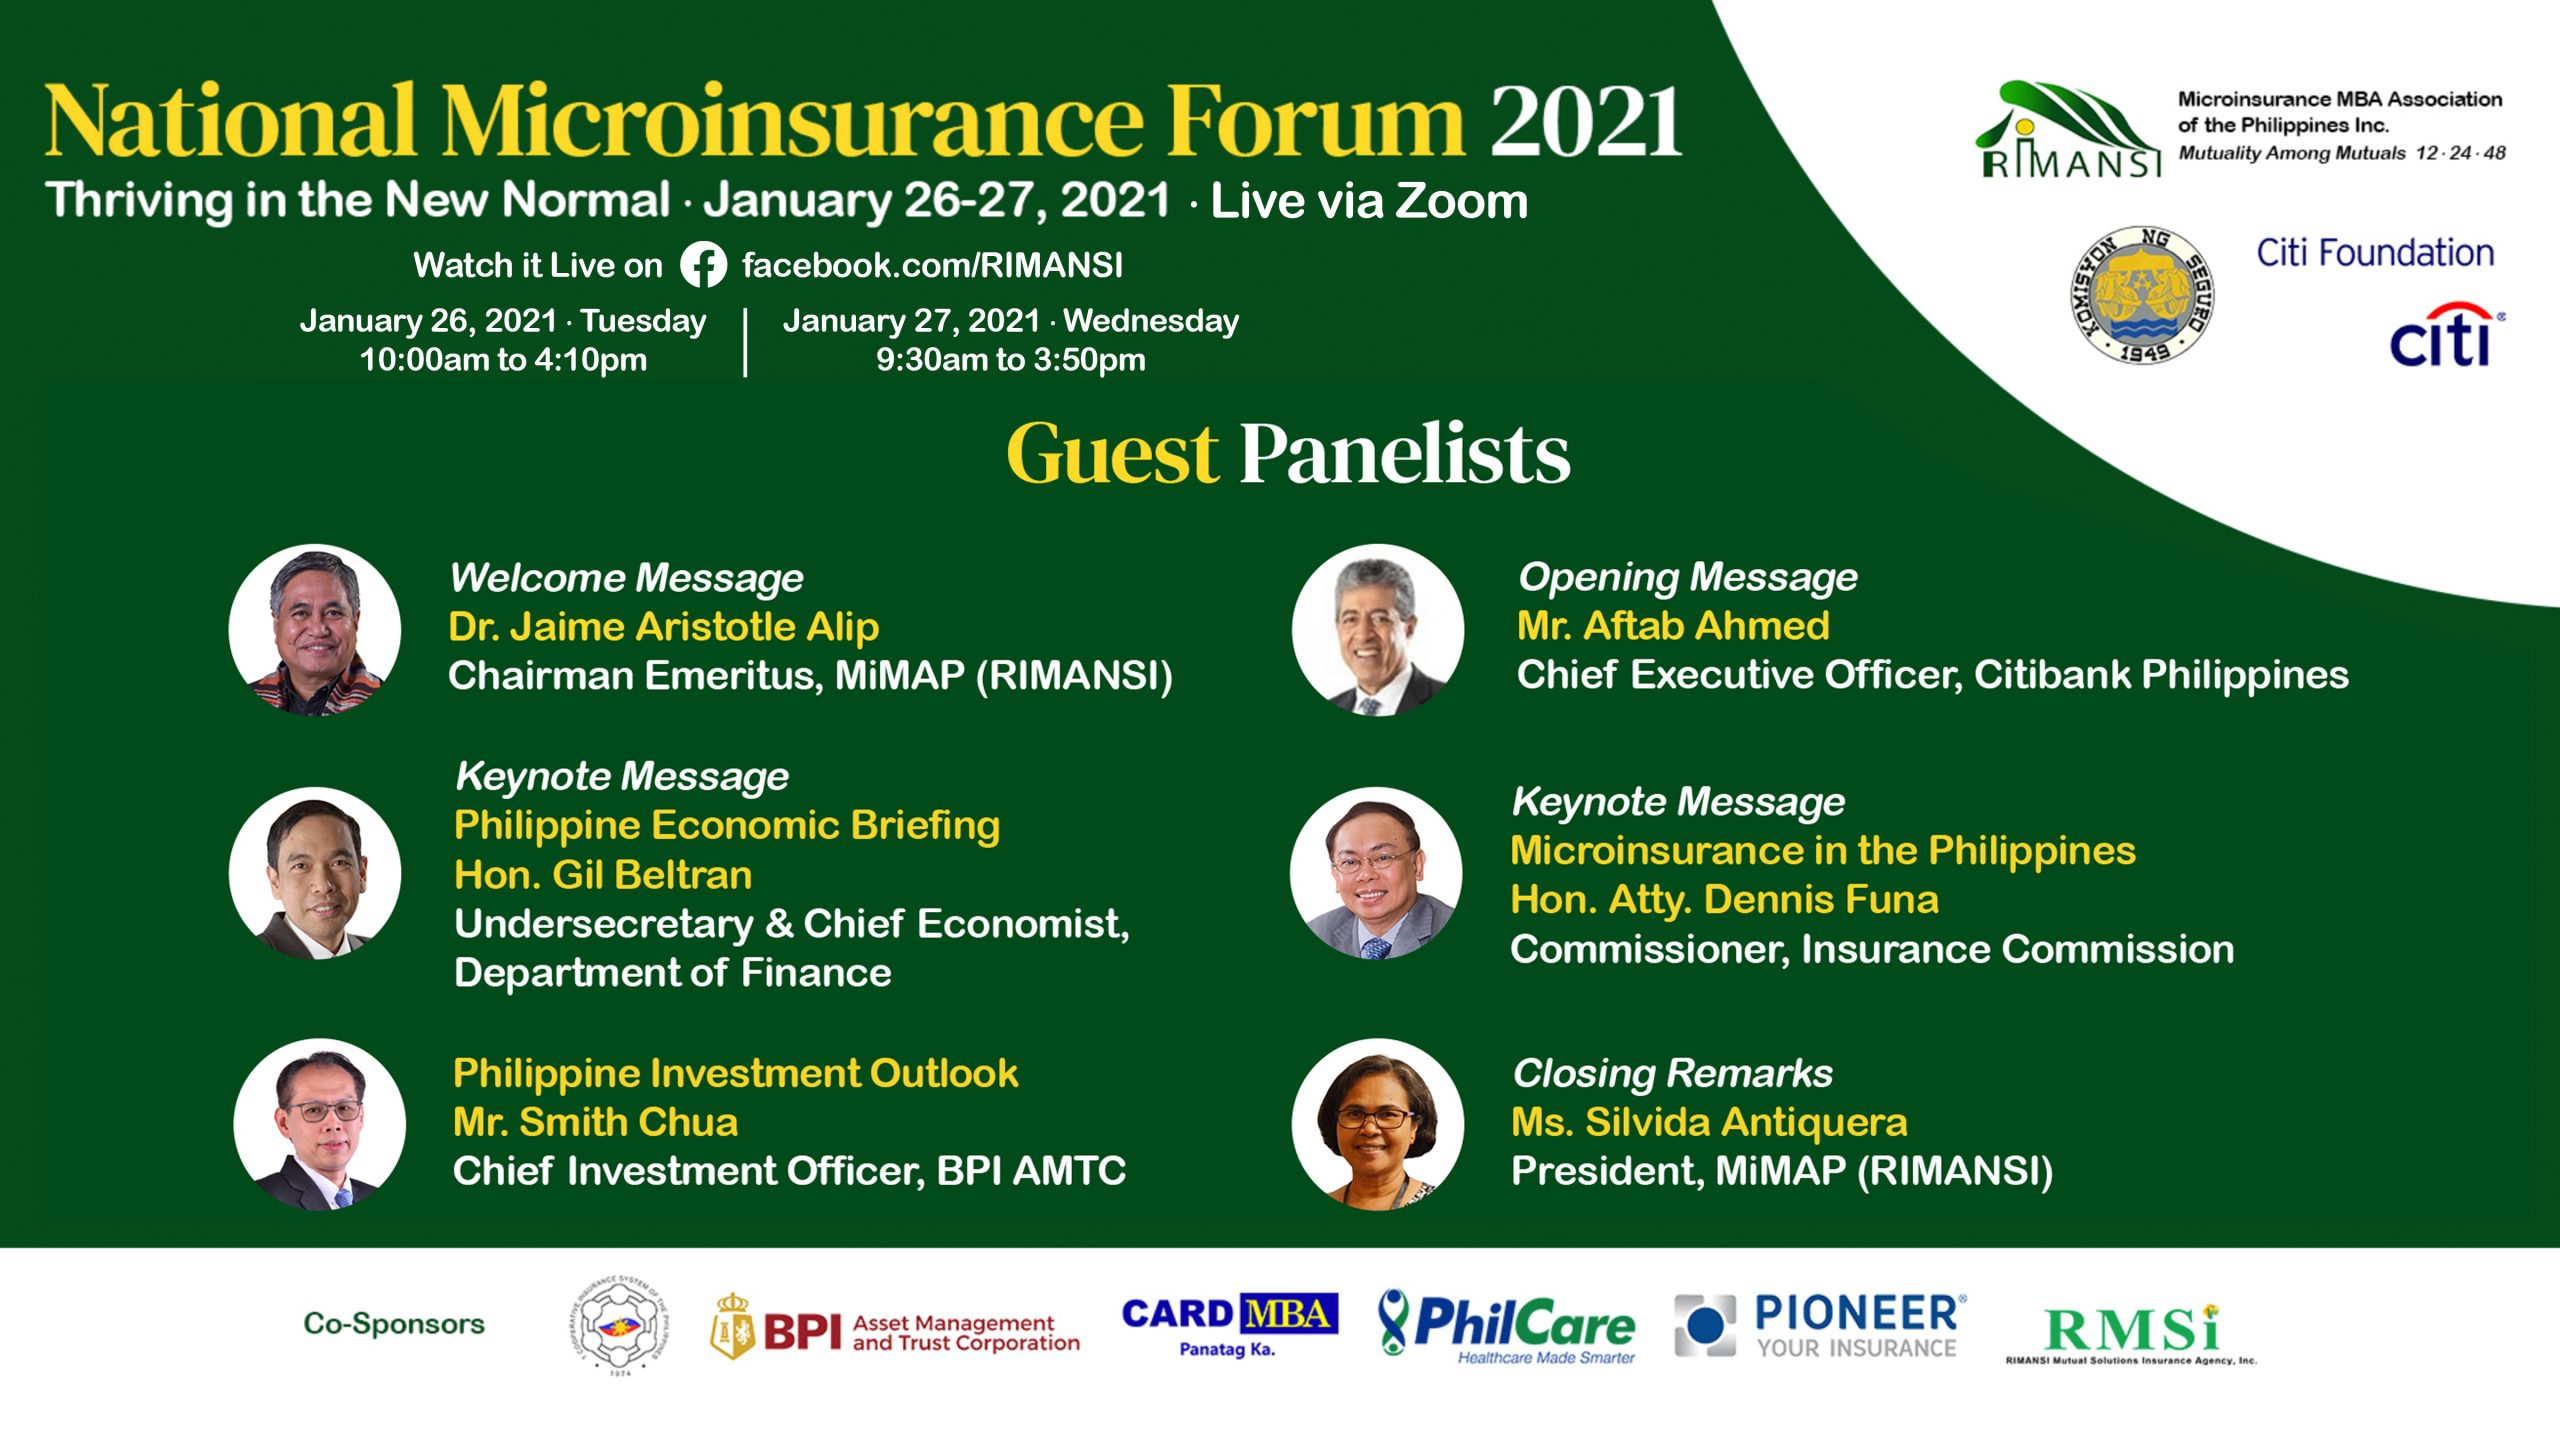 Braving the New Normal with Greater Social Protection Through Microinsurance